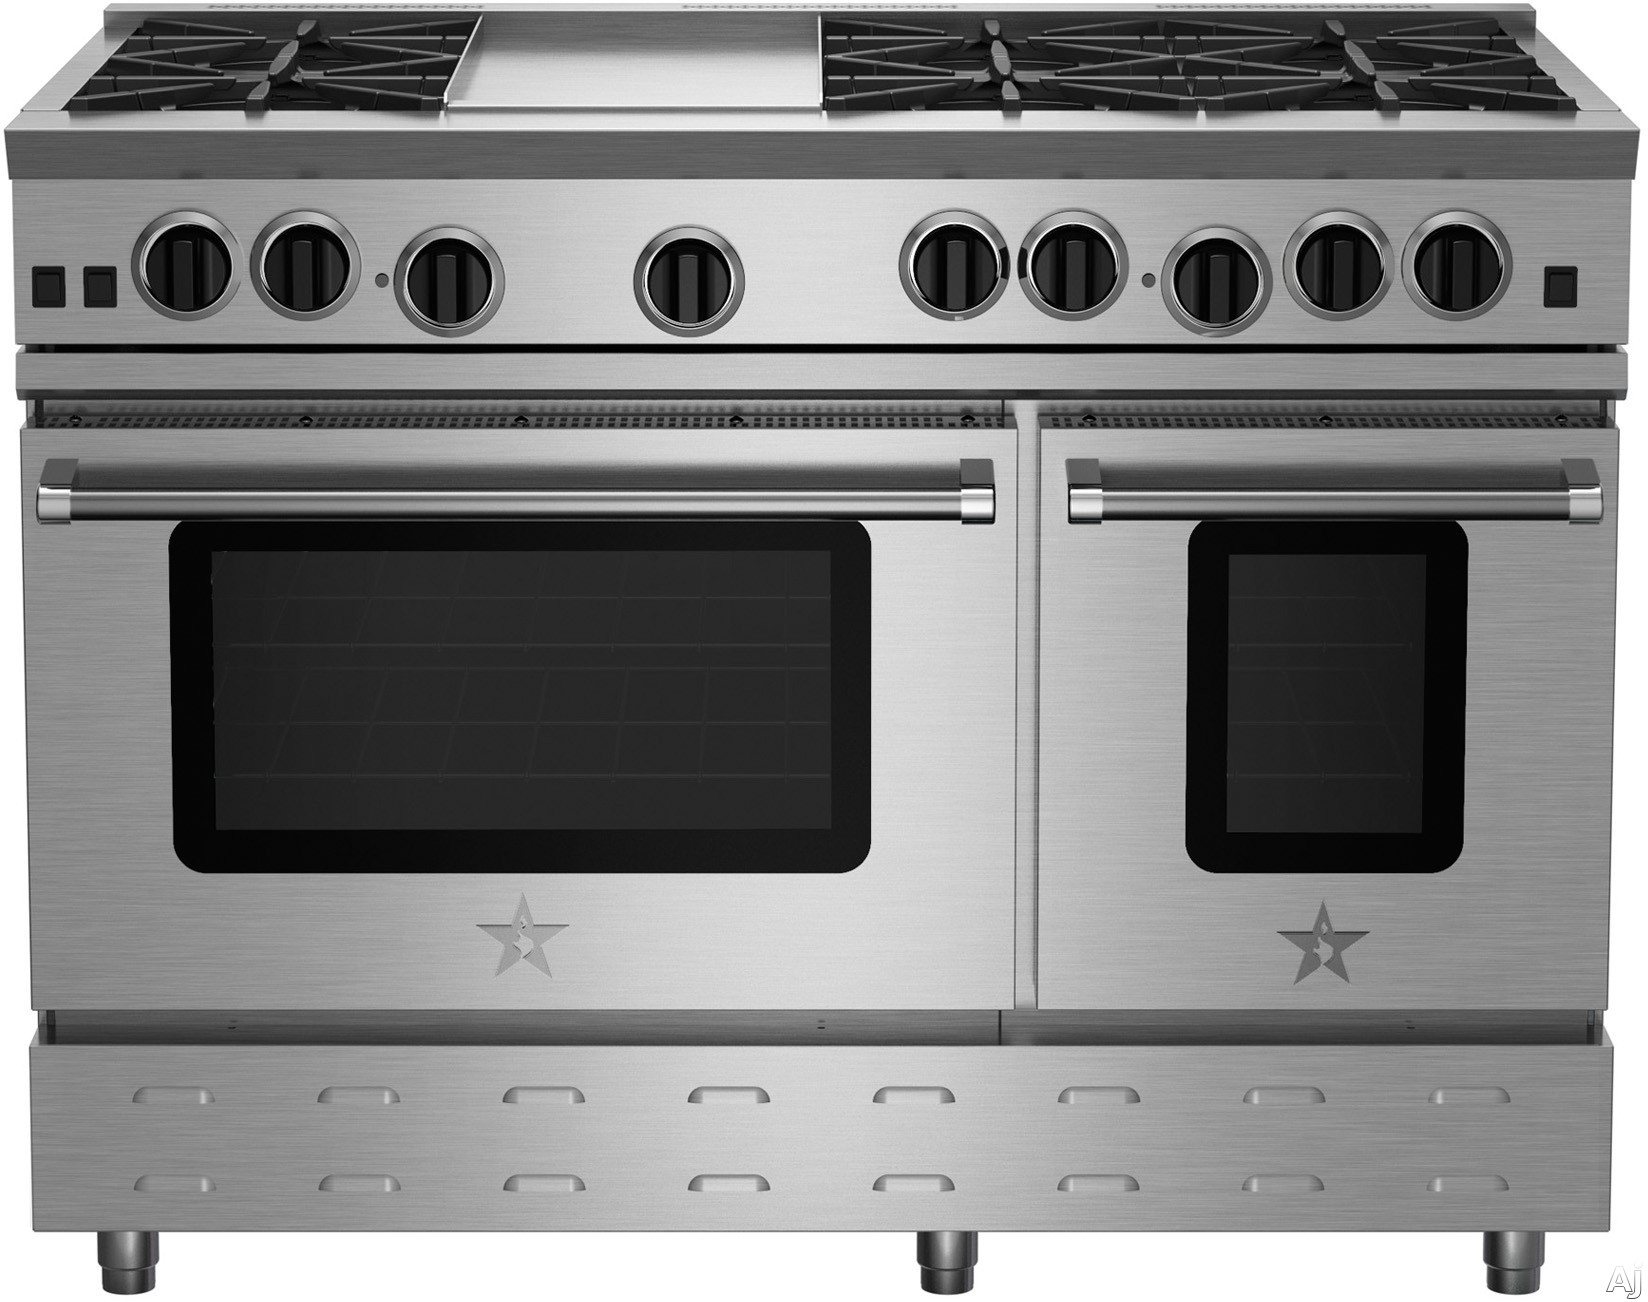 Front View (photo does not represent cooktop configuration)